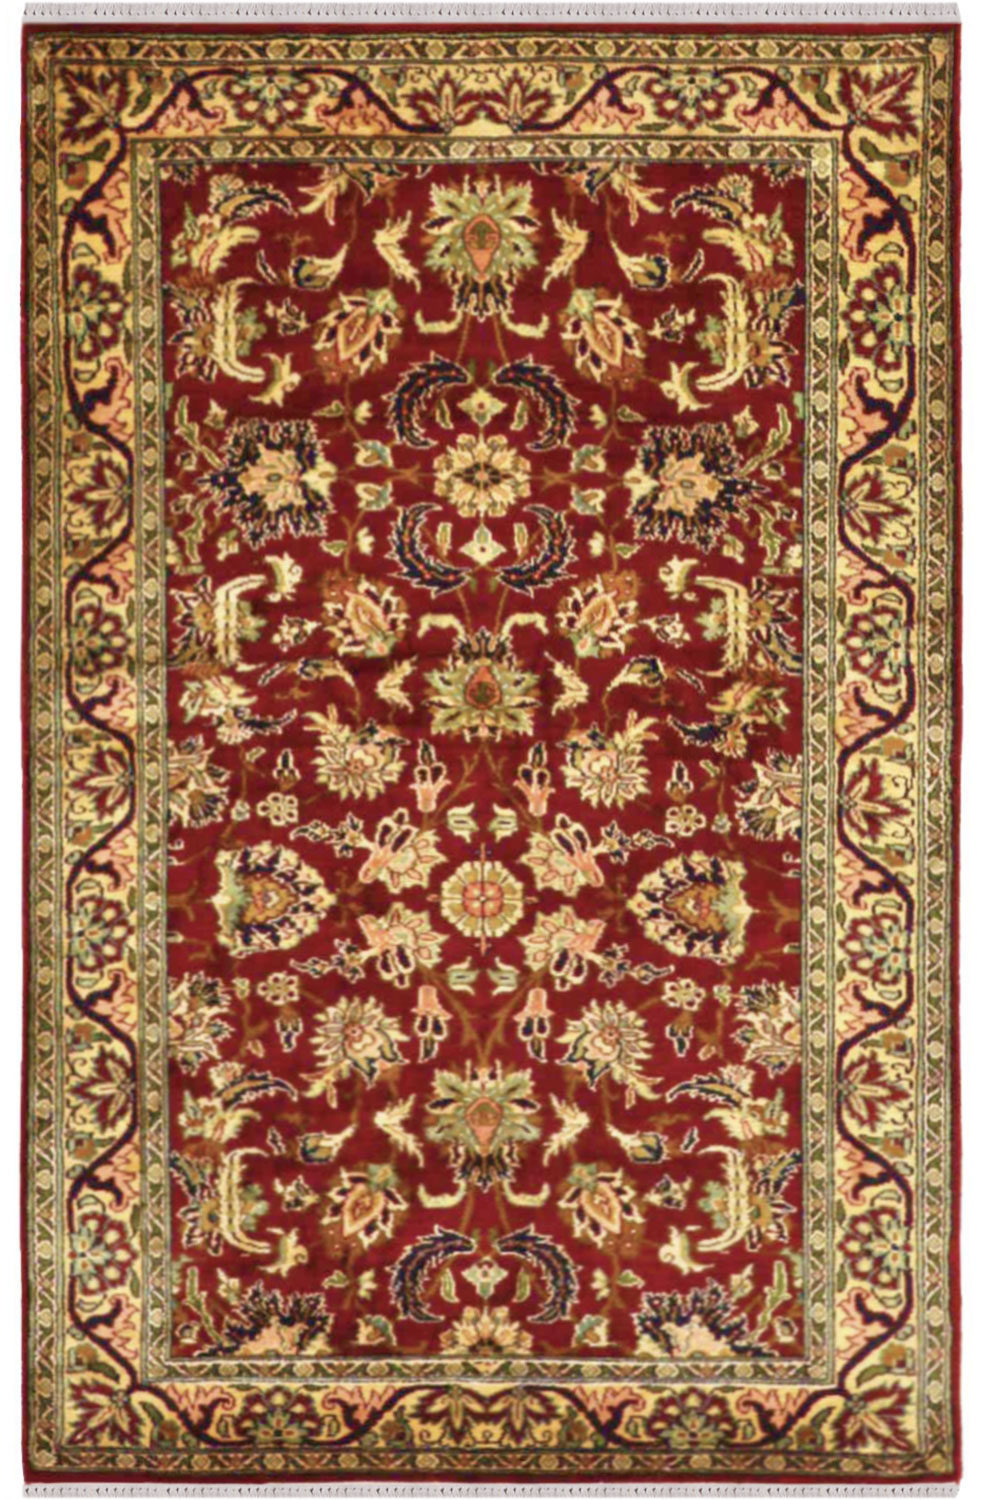 Applique Kashan Silk Carpet